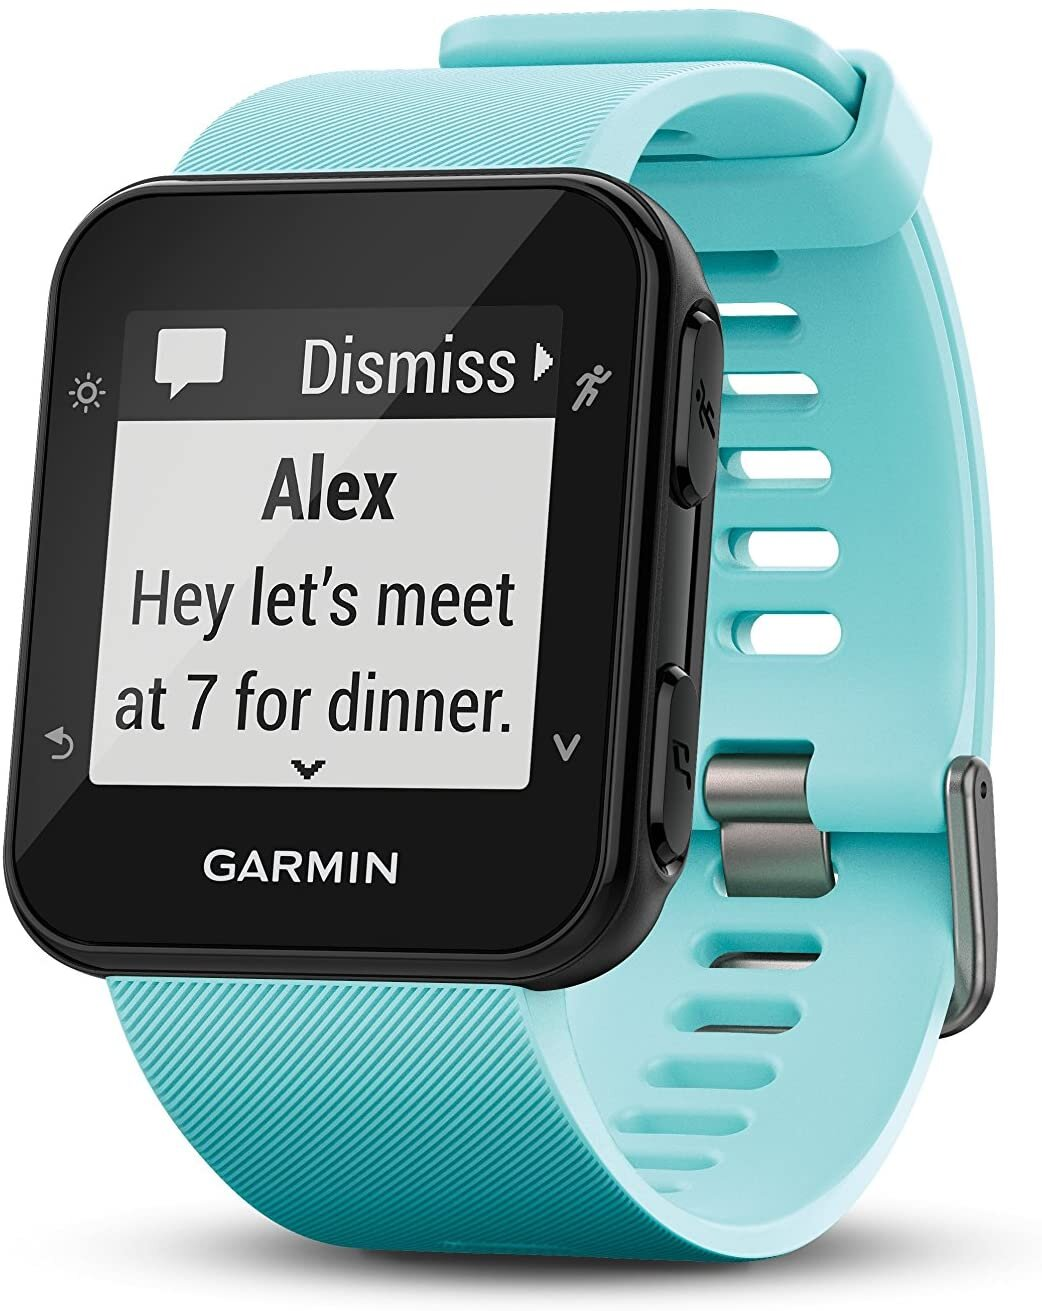 Garmin Forerunner 35, Easy-to-Use GPS Running Watch,